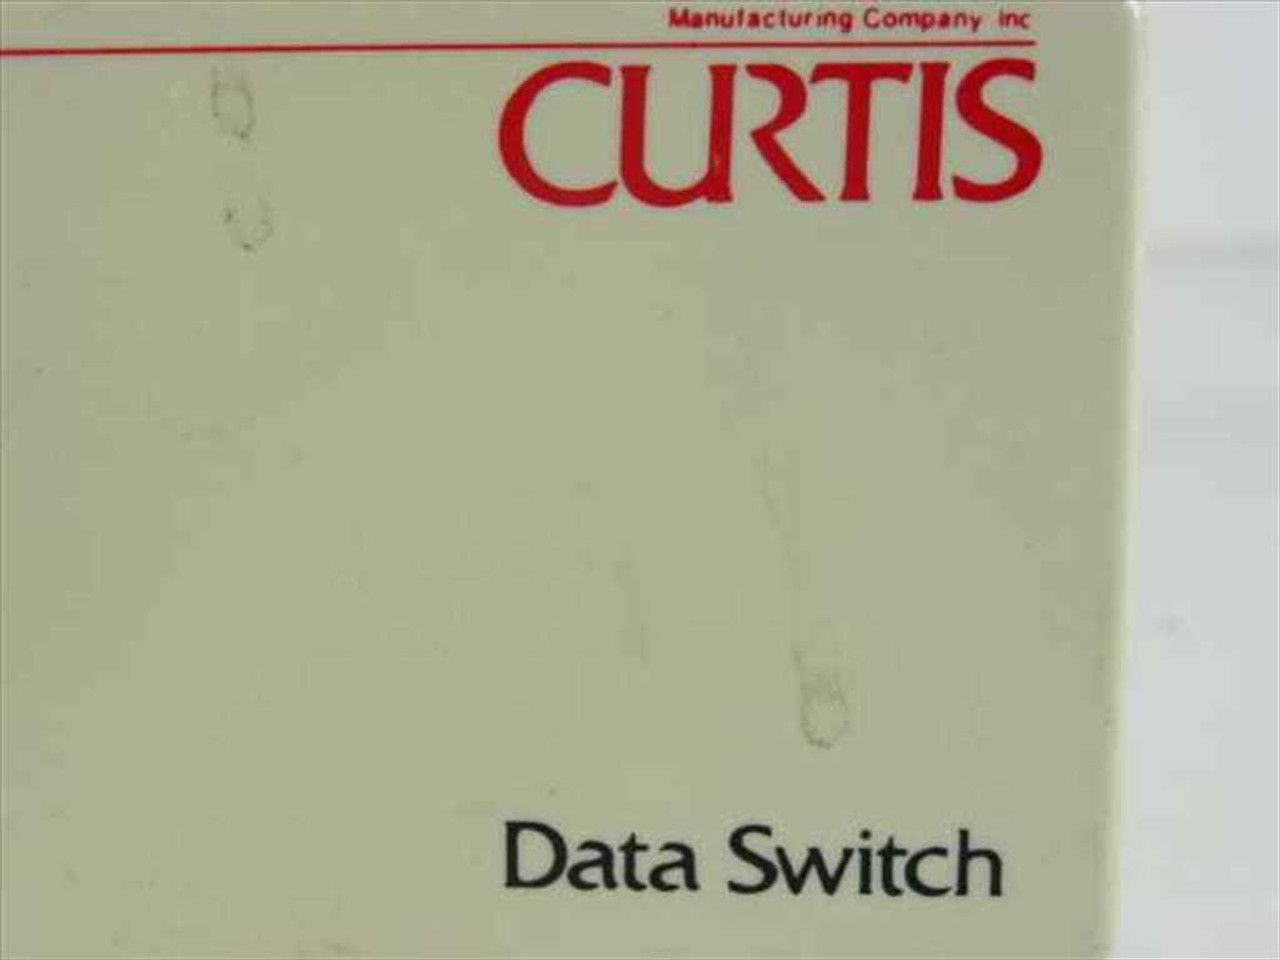 Curtis Ab Two Way Parallel Printer Data Switch 2